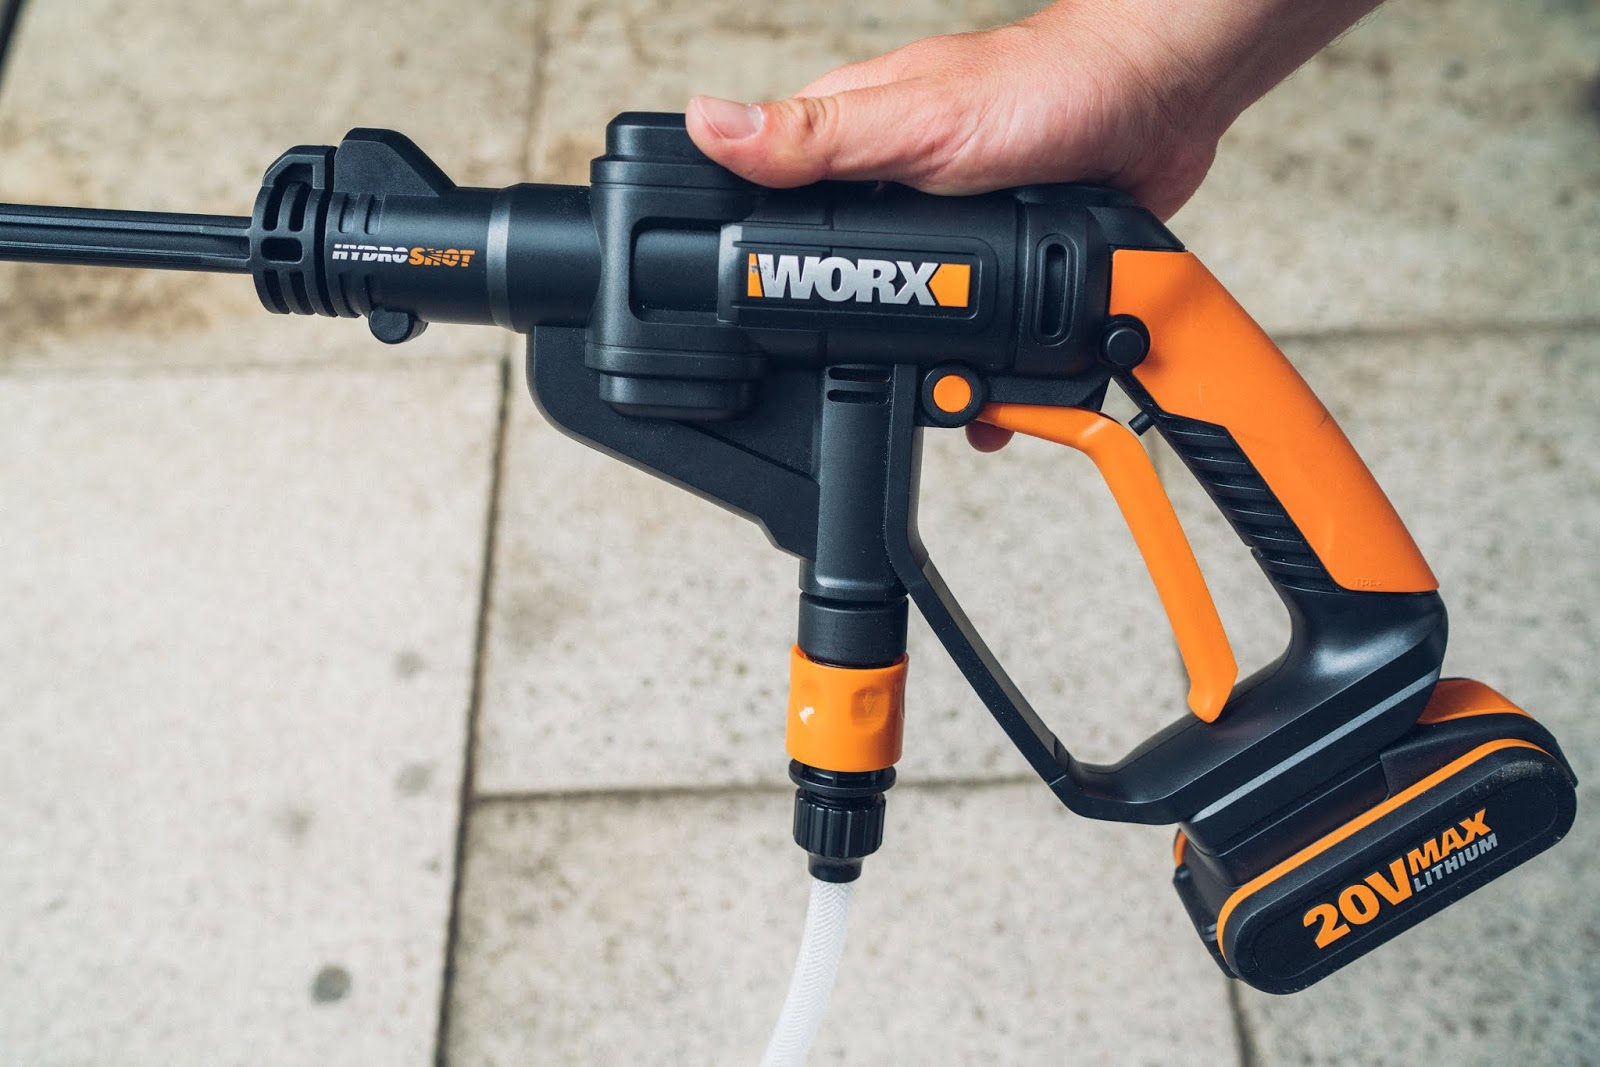 gear of the week #gotw kw 21 | worx wg629e akku hochdruckreiniger